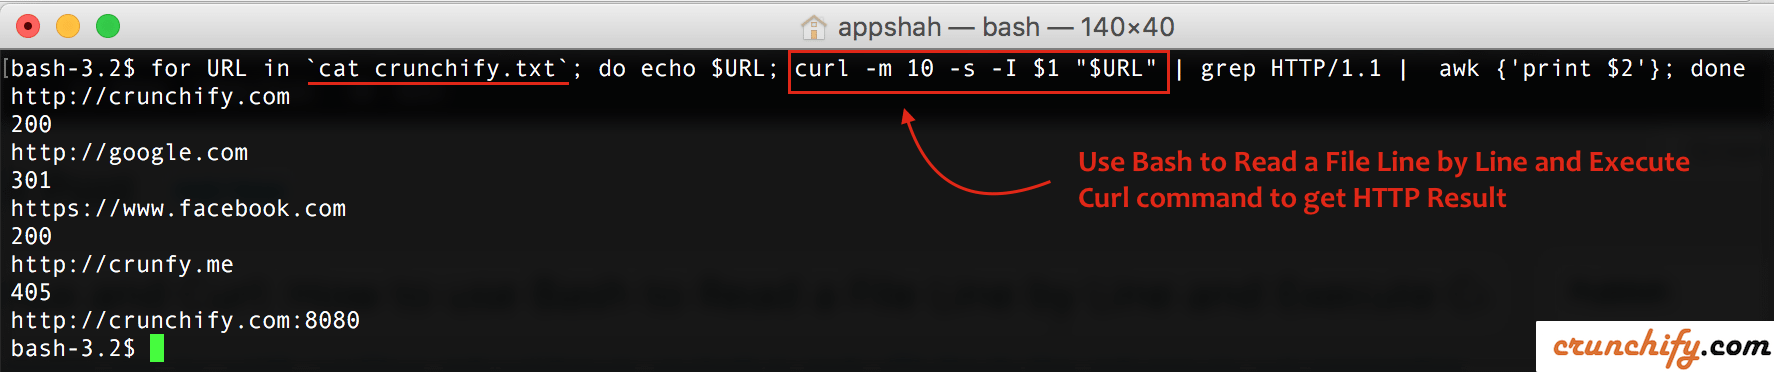 Use Bash To Read A File Line By And Execute Curl Command Get HTTP